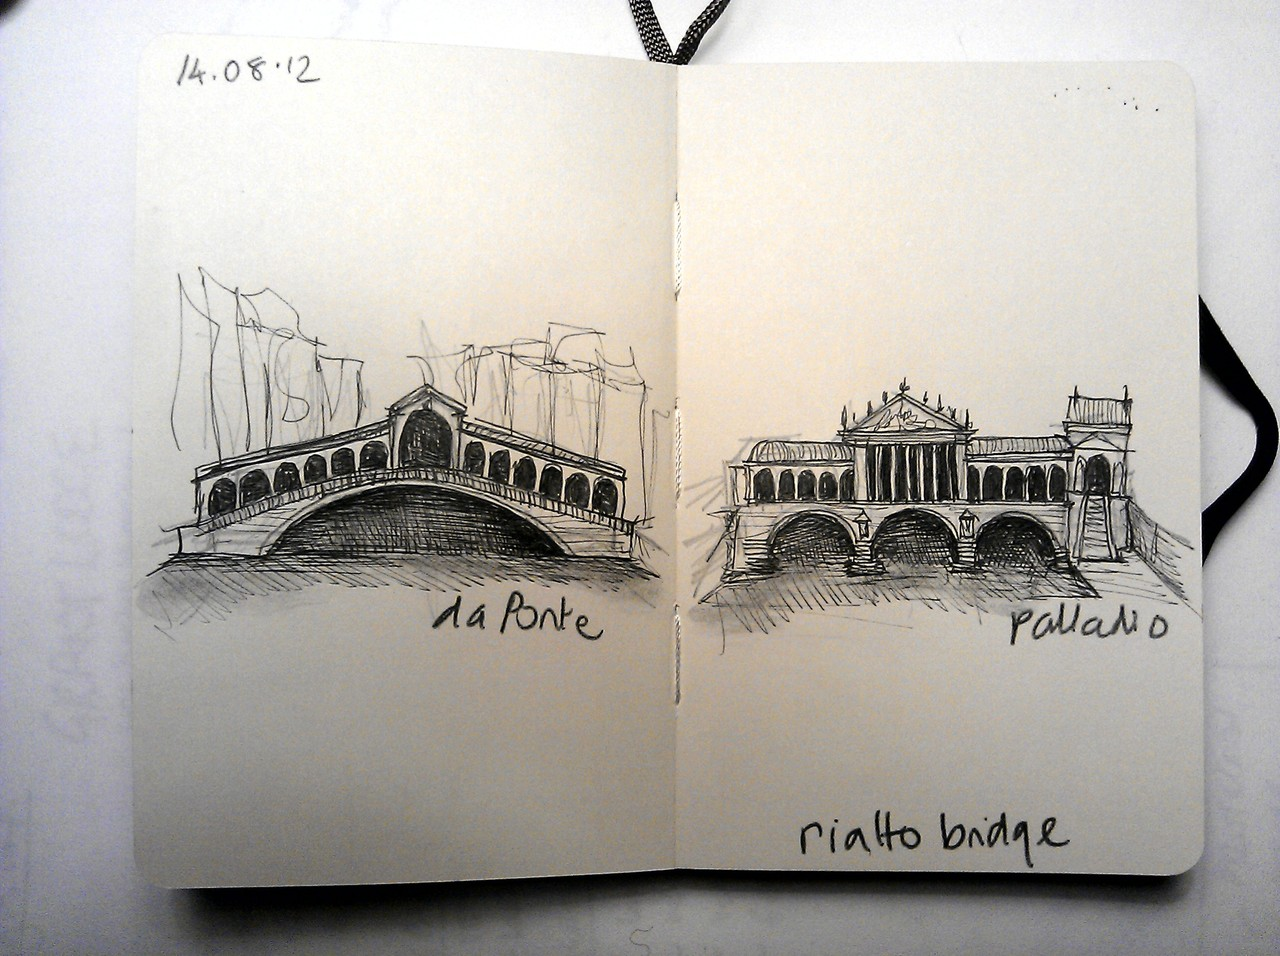 365 drawings later … day 196 .. rialto bridge [palladio vs da ponte]